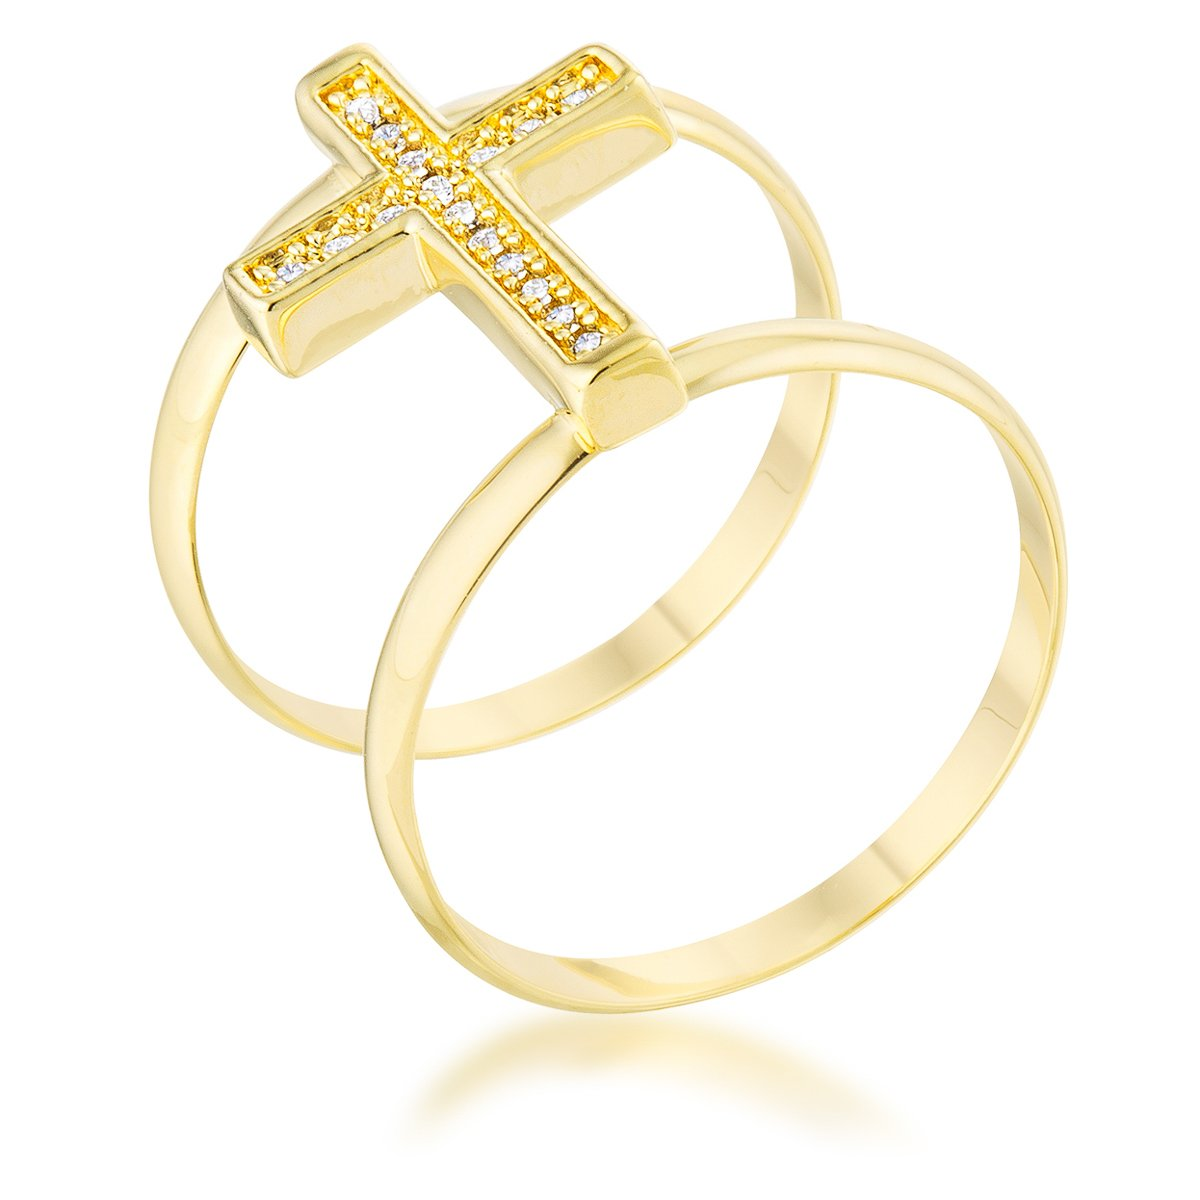 Francis 0.08ct CZ 14k Gold Contemporary Cross Ring - R08486G-C01